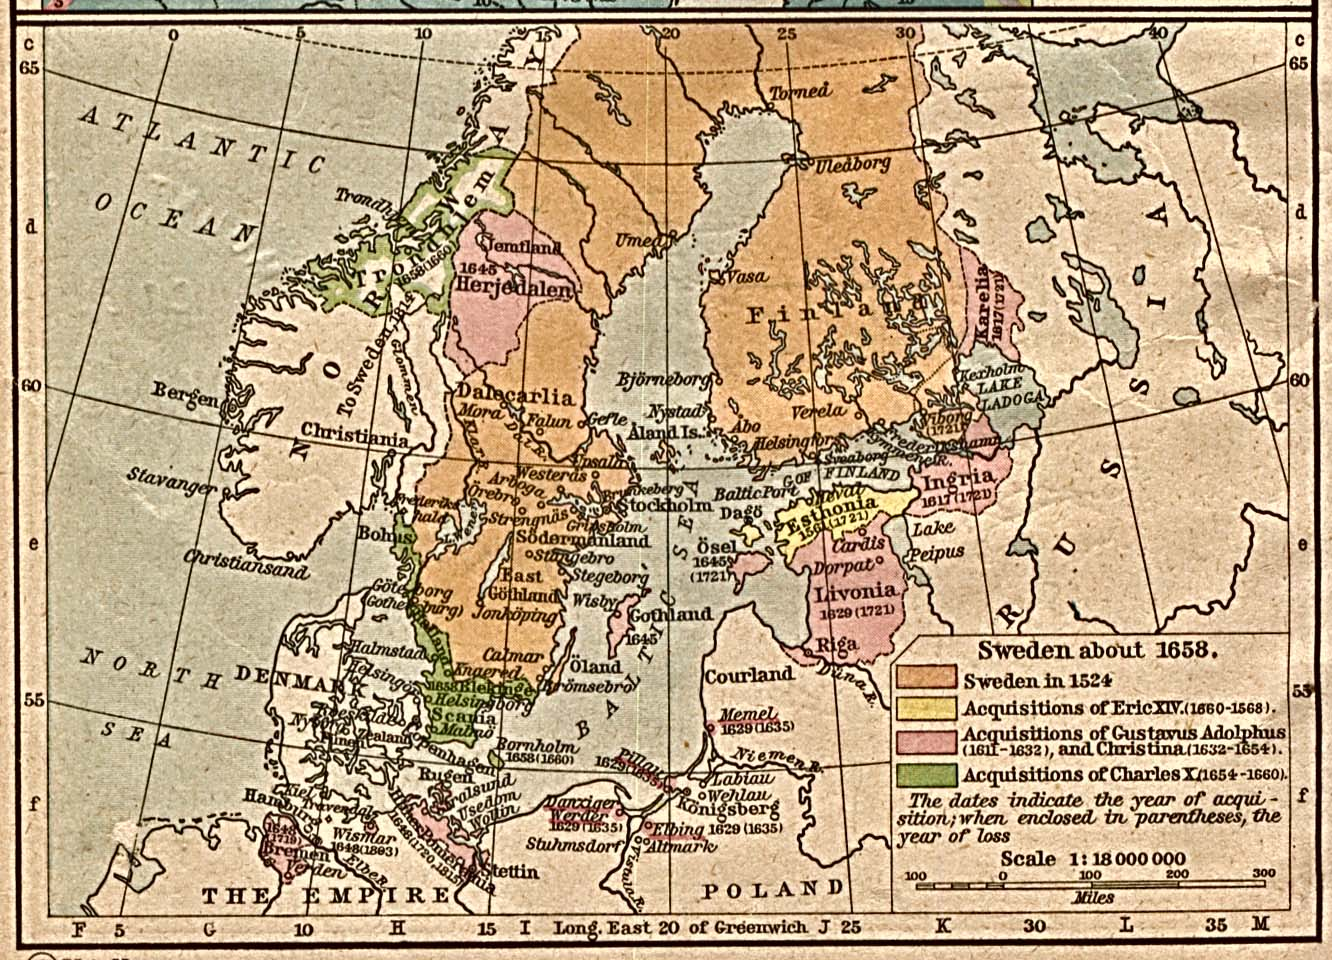 Map of Sweden About 1658